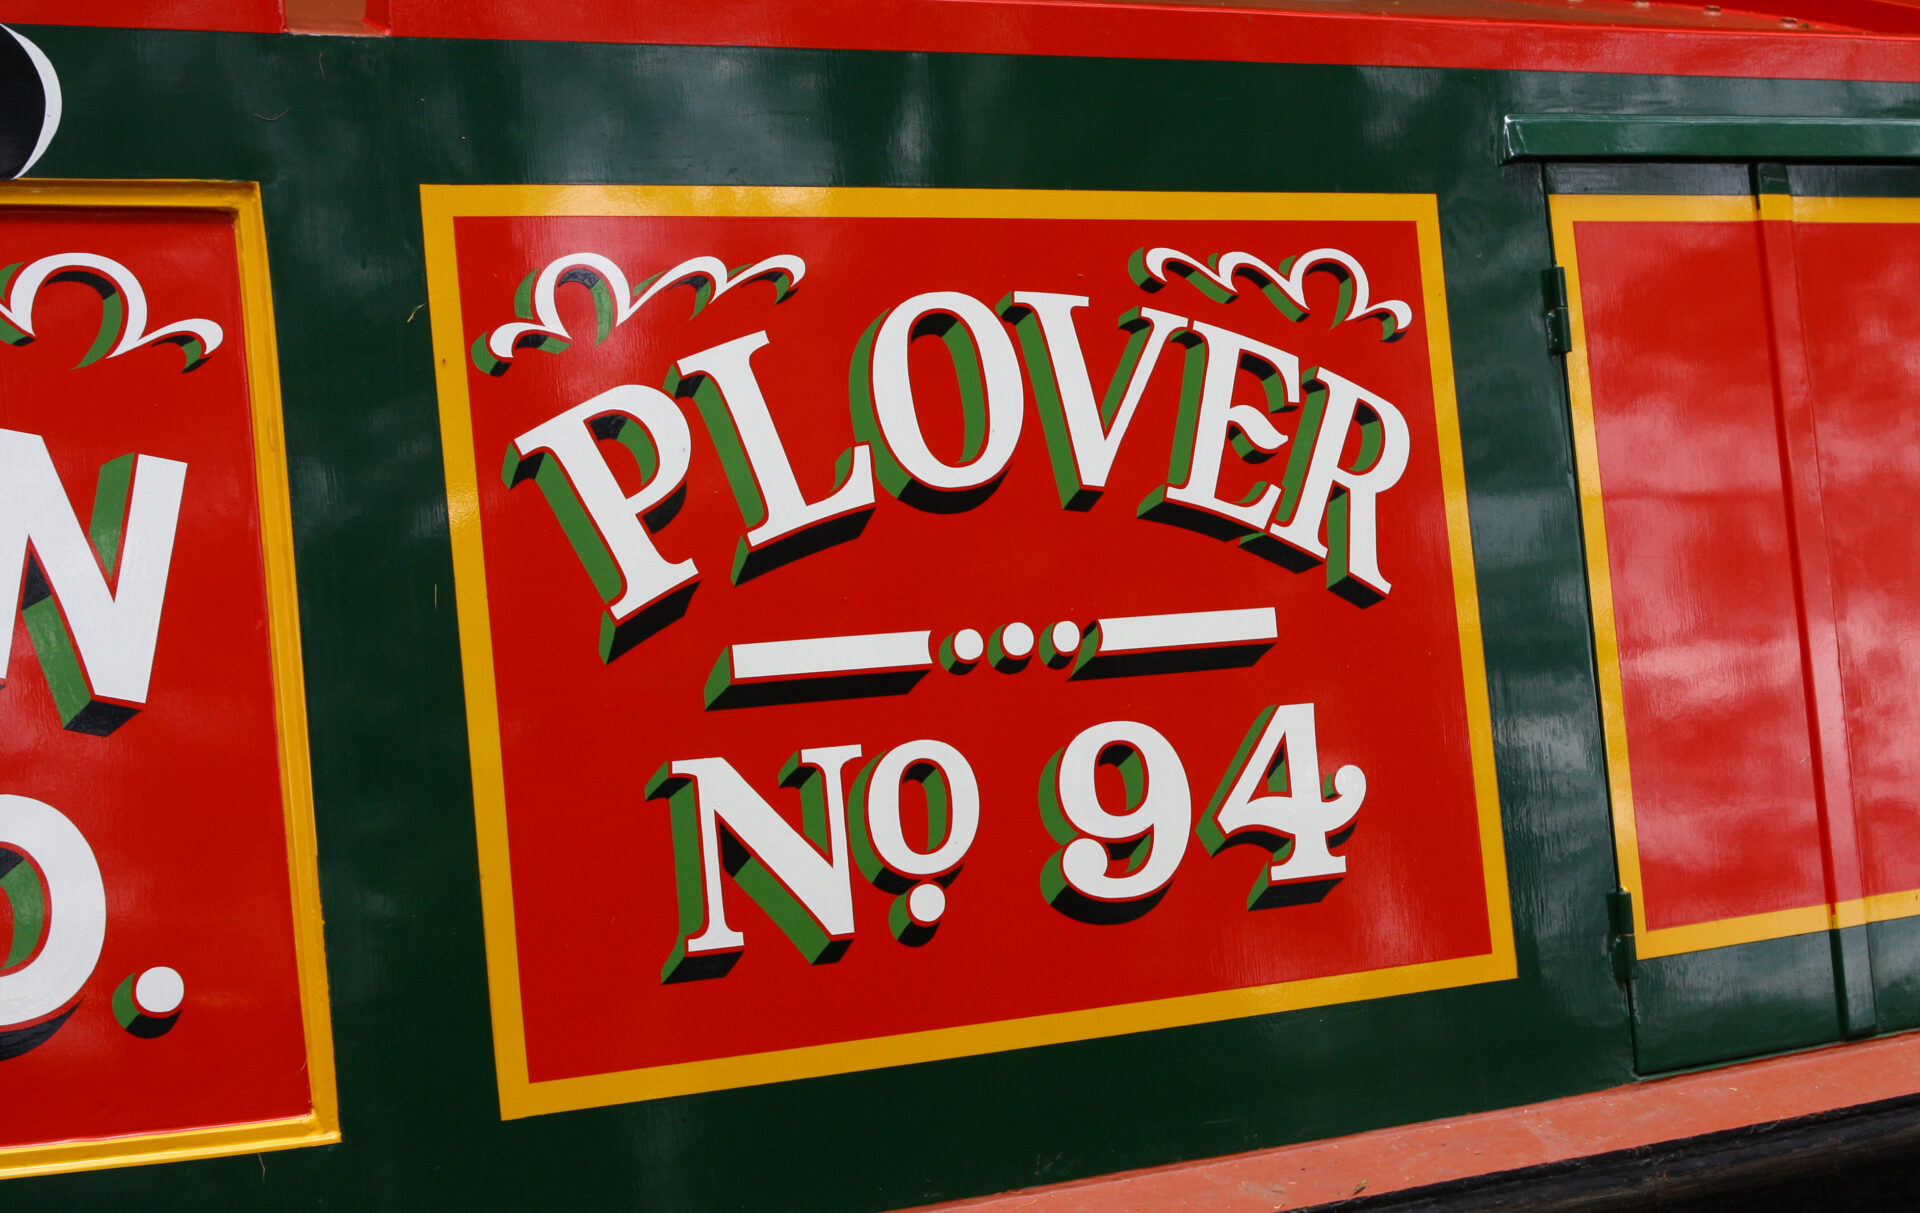 Great Canal boat names.  Nb. PLOVER in traditional livery.